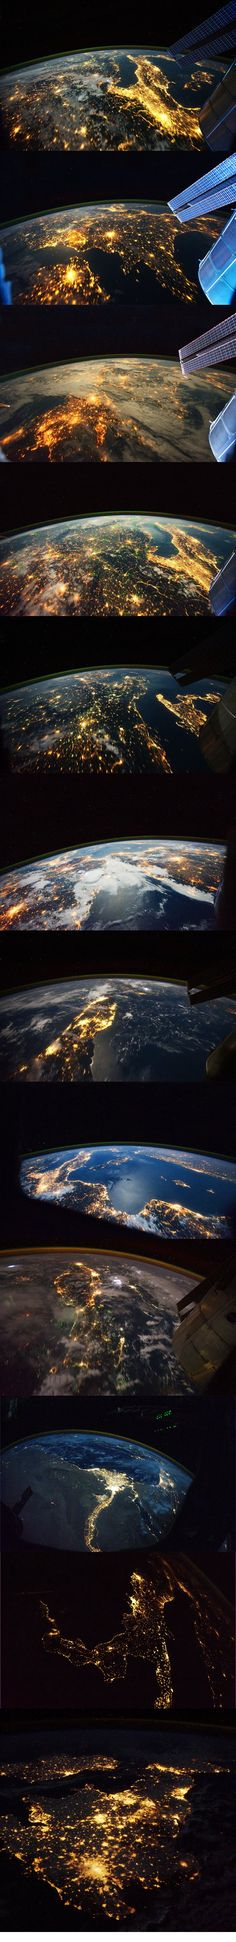 Earth at night from space